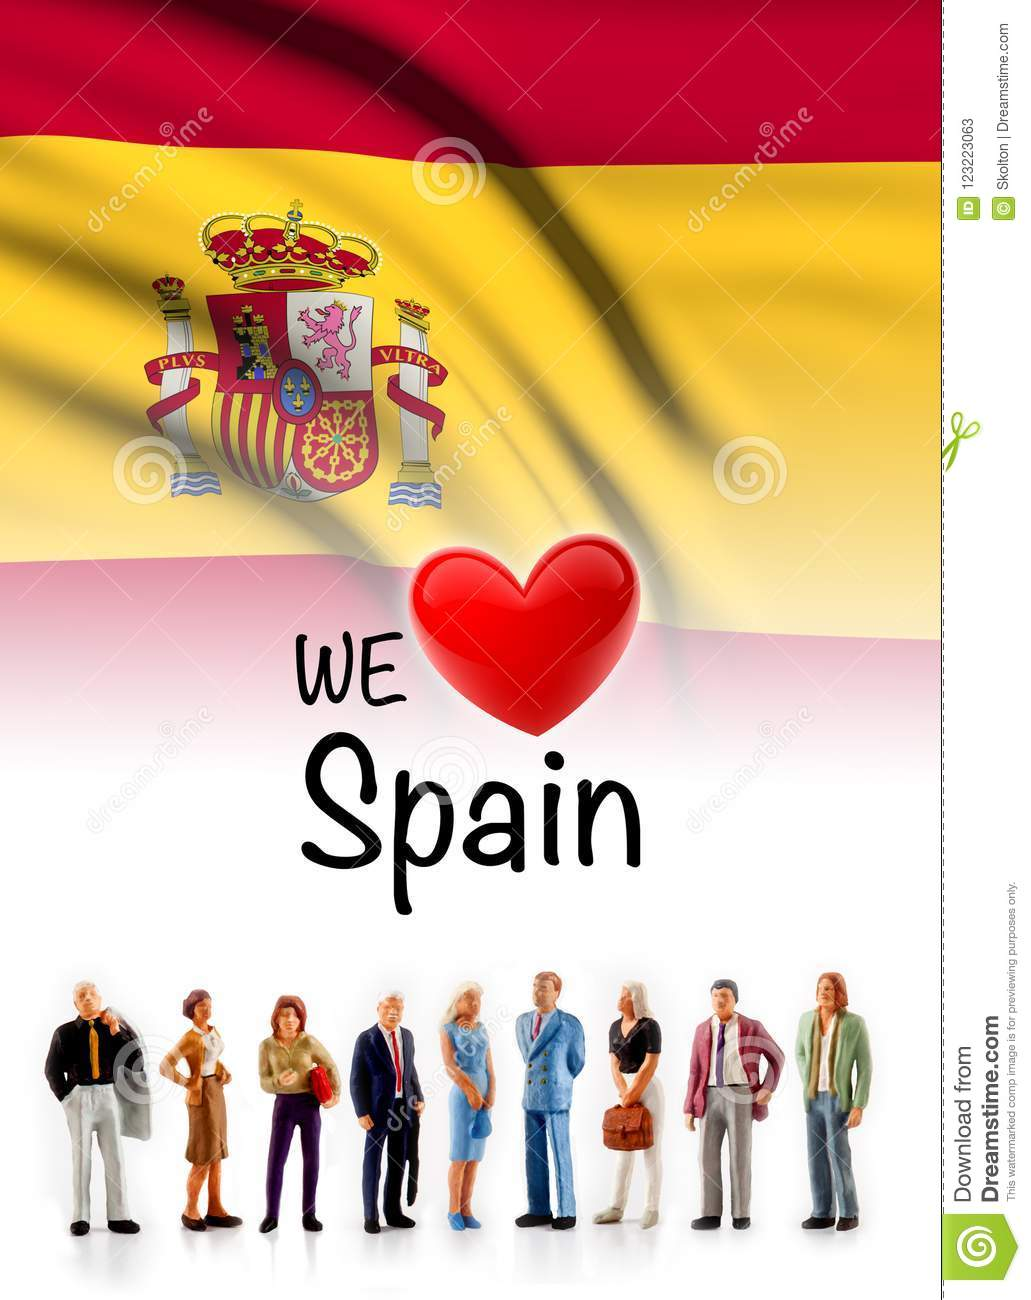 We love Spain, A group of people pose next to the Spanish flag